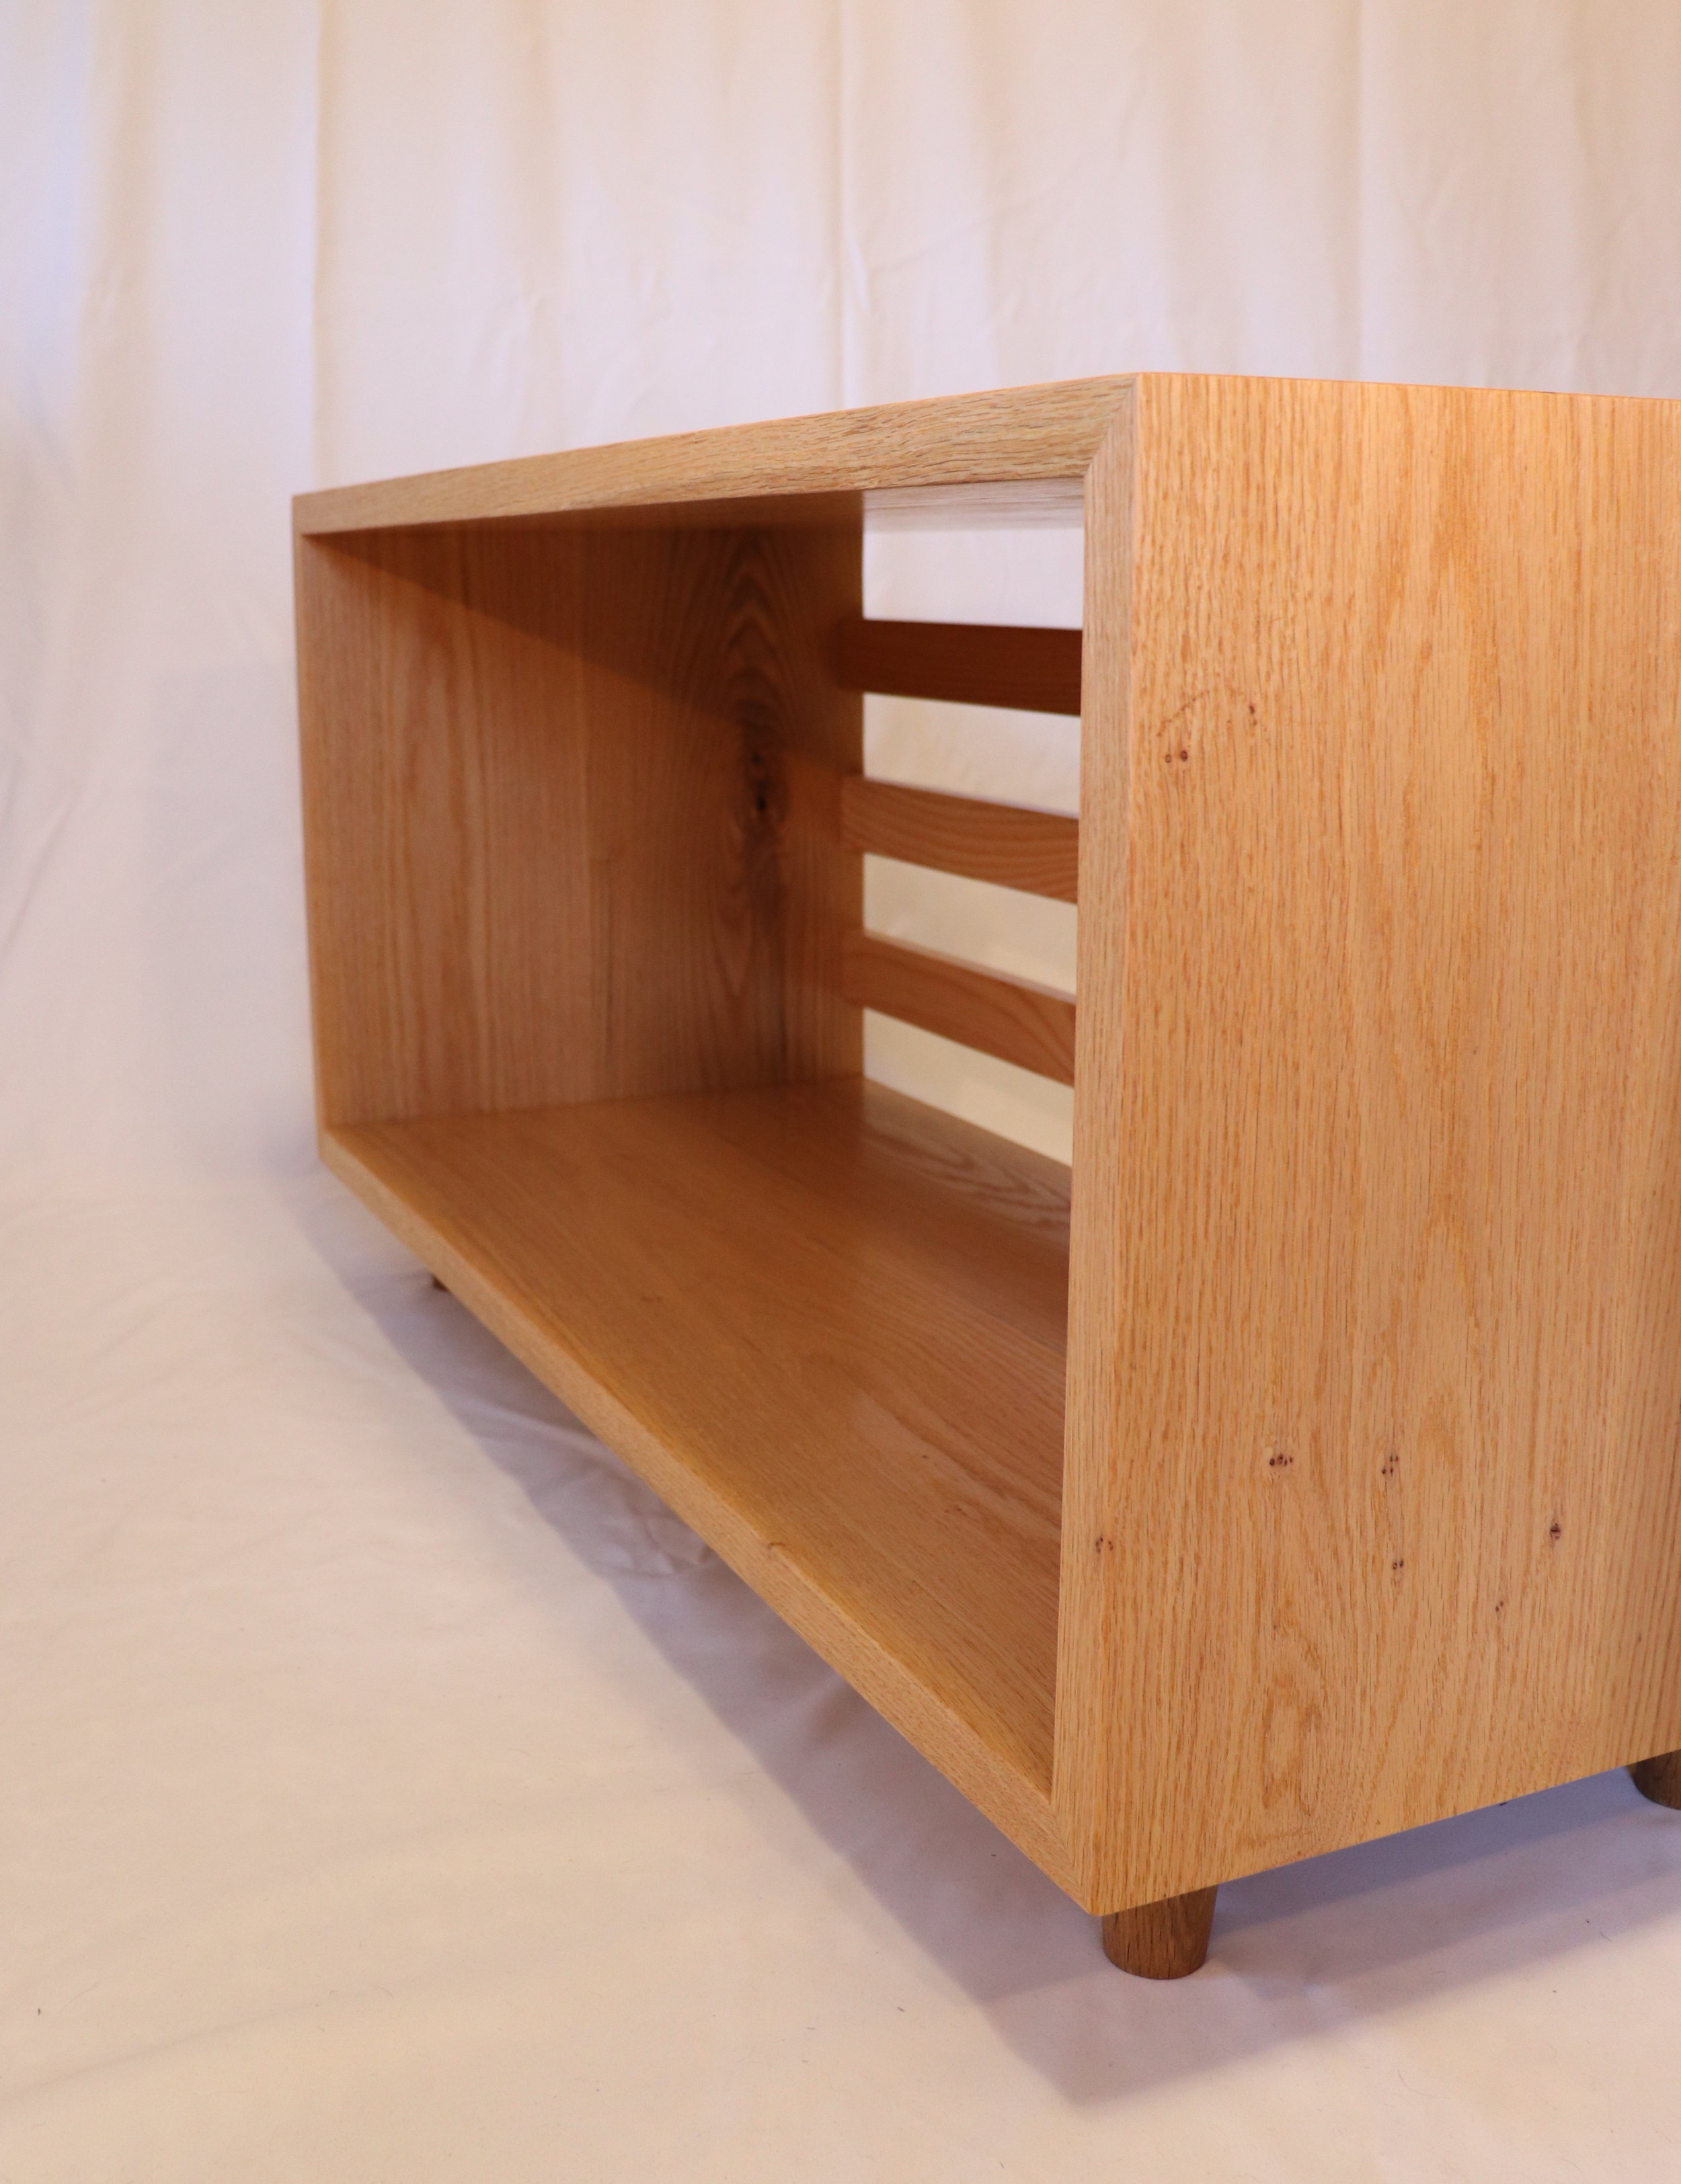 TV Console - White oak, grain wrapped miters with hidden tenons, back slats attached with lap dovetails, small turned feet at the bottom. This was a quick and dirty project to get our TV off the floor!